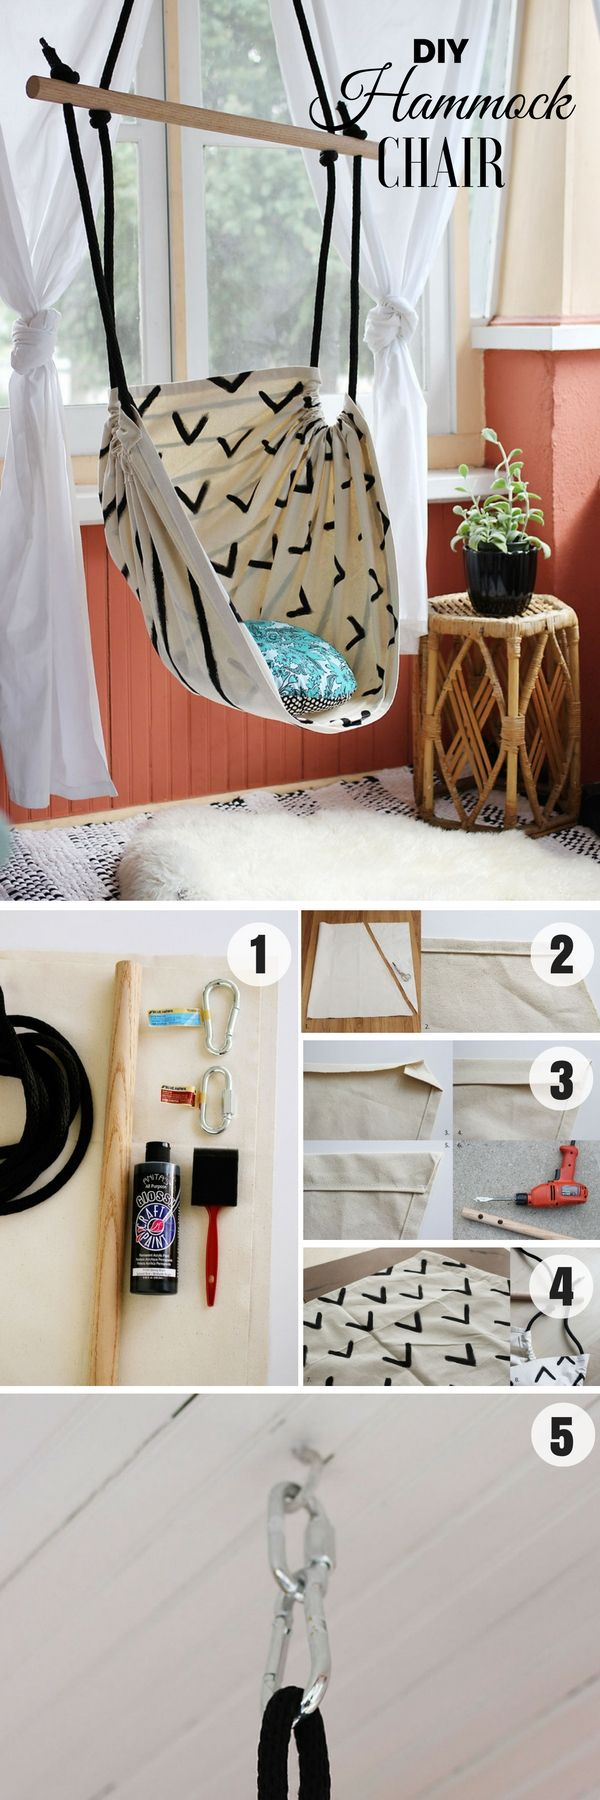 Diy Projects For Bedroom Decor Part - 20: 16 Beautiful DIY Bedroom Decor Ideas That Will Inspire You